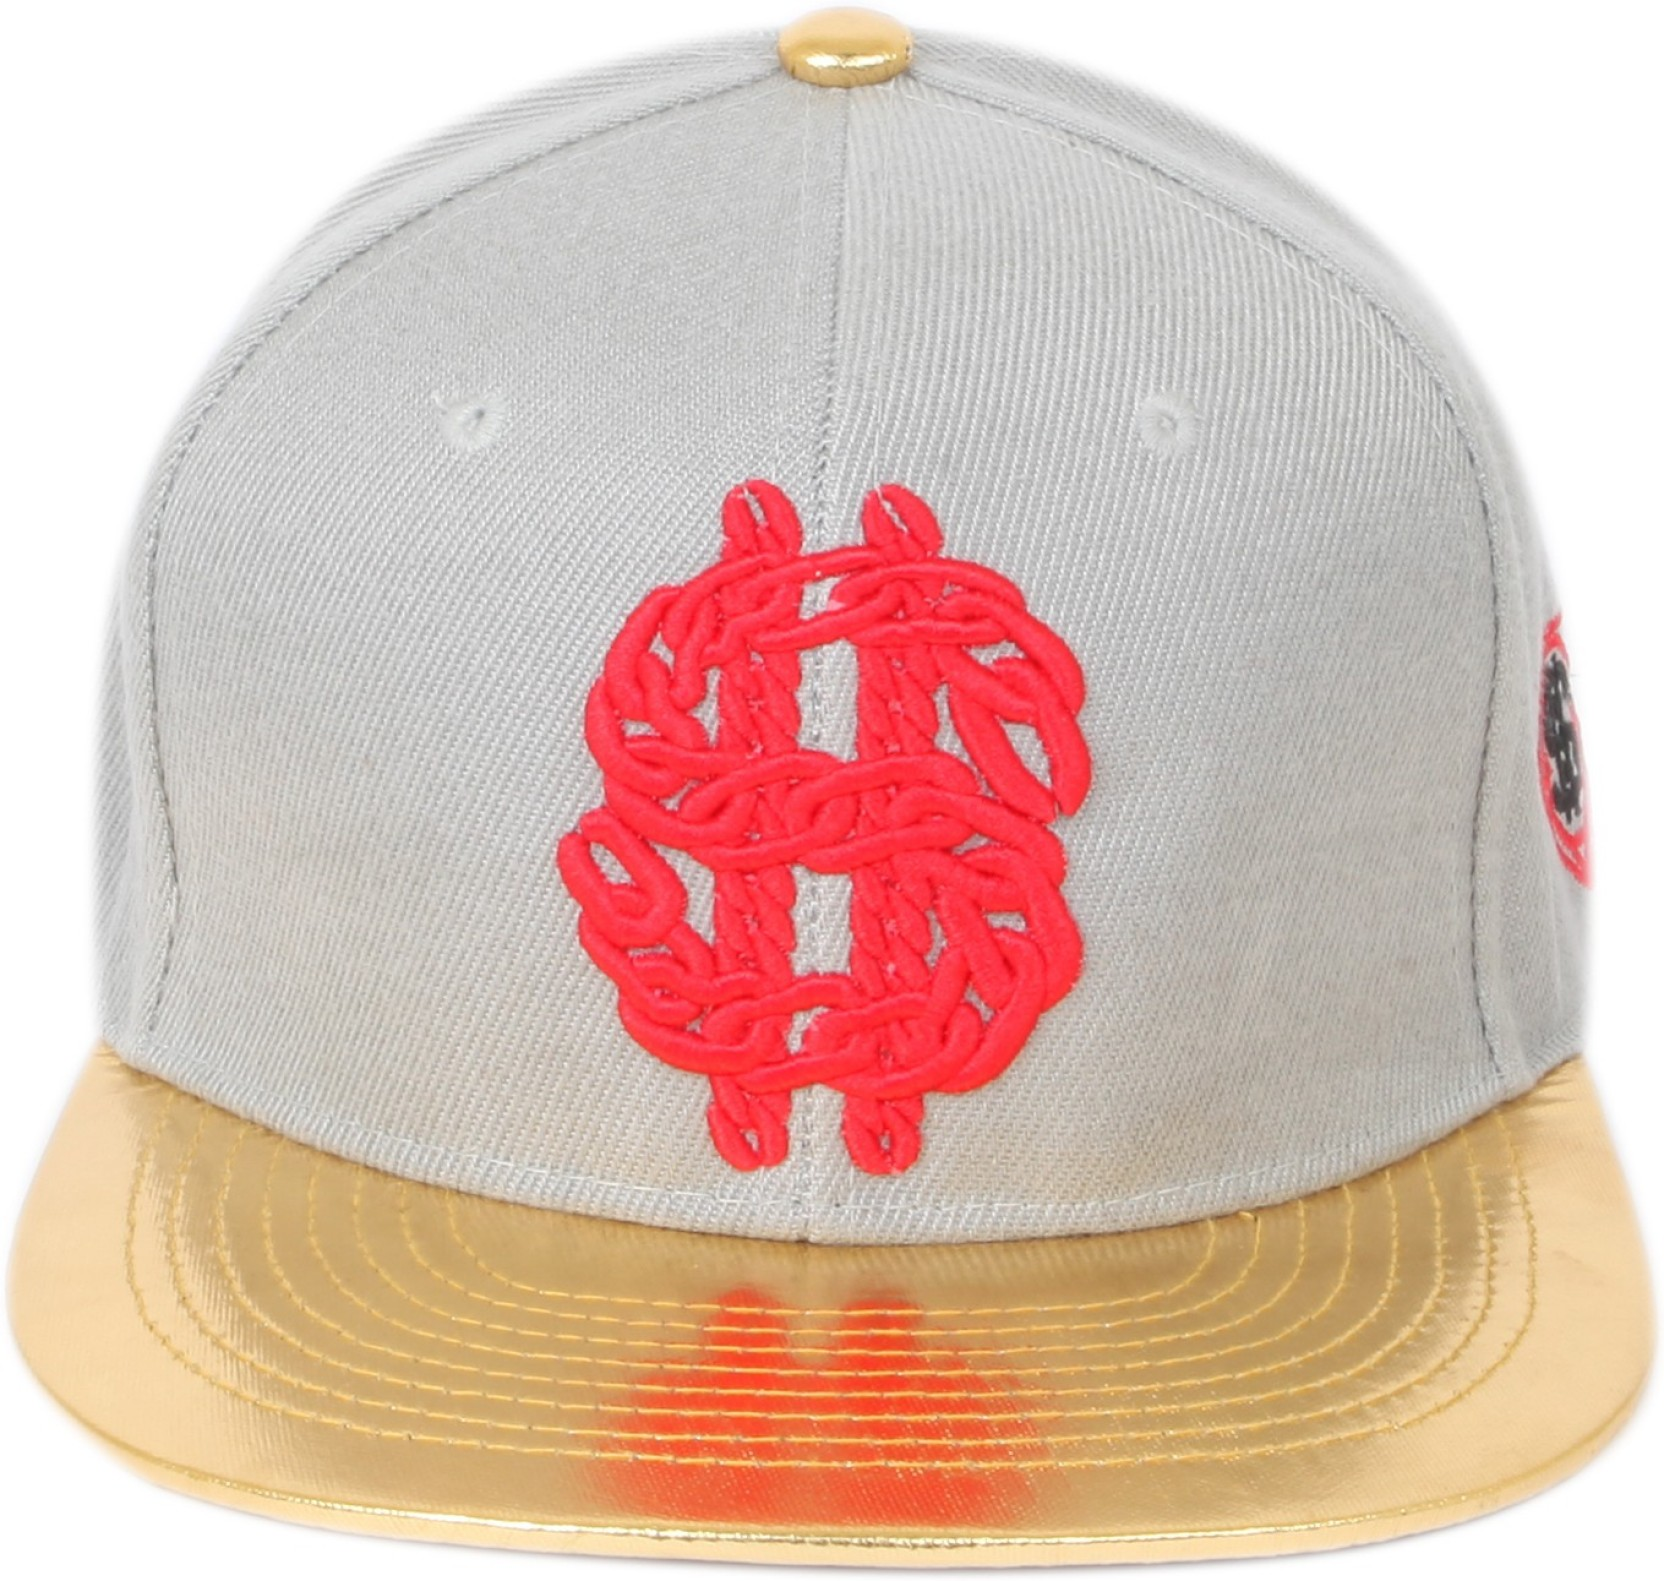 824a2bffe4c ILU Caps for men and womens